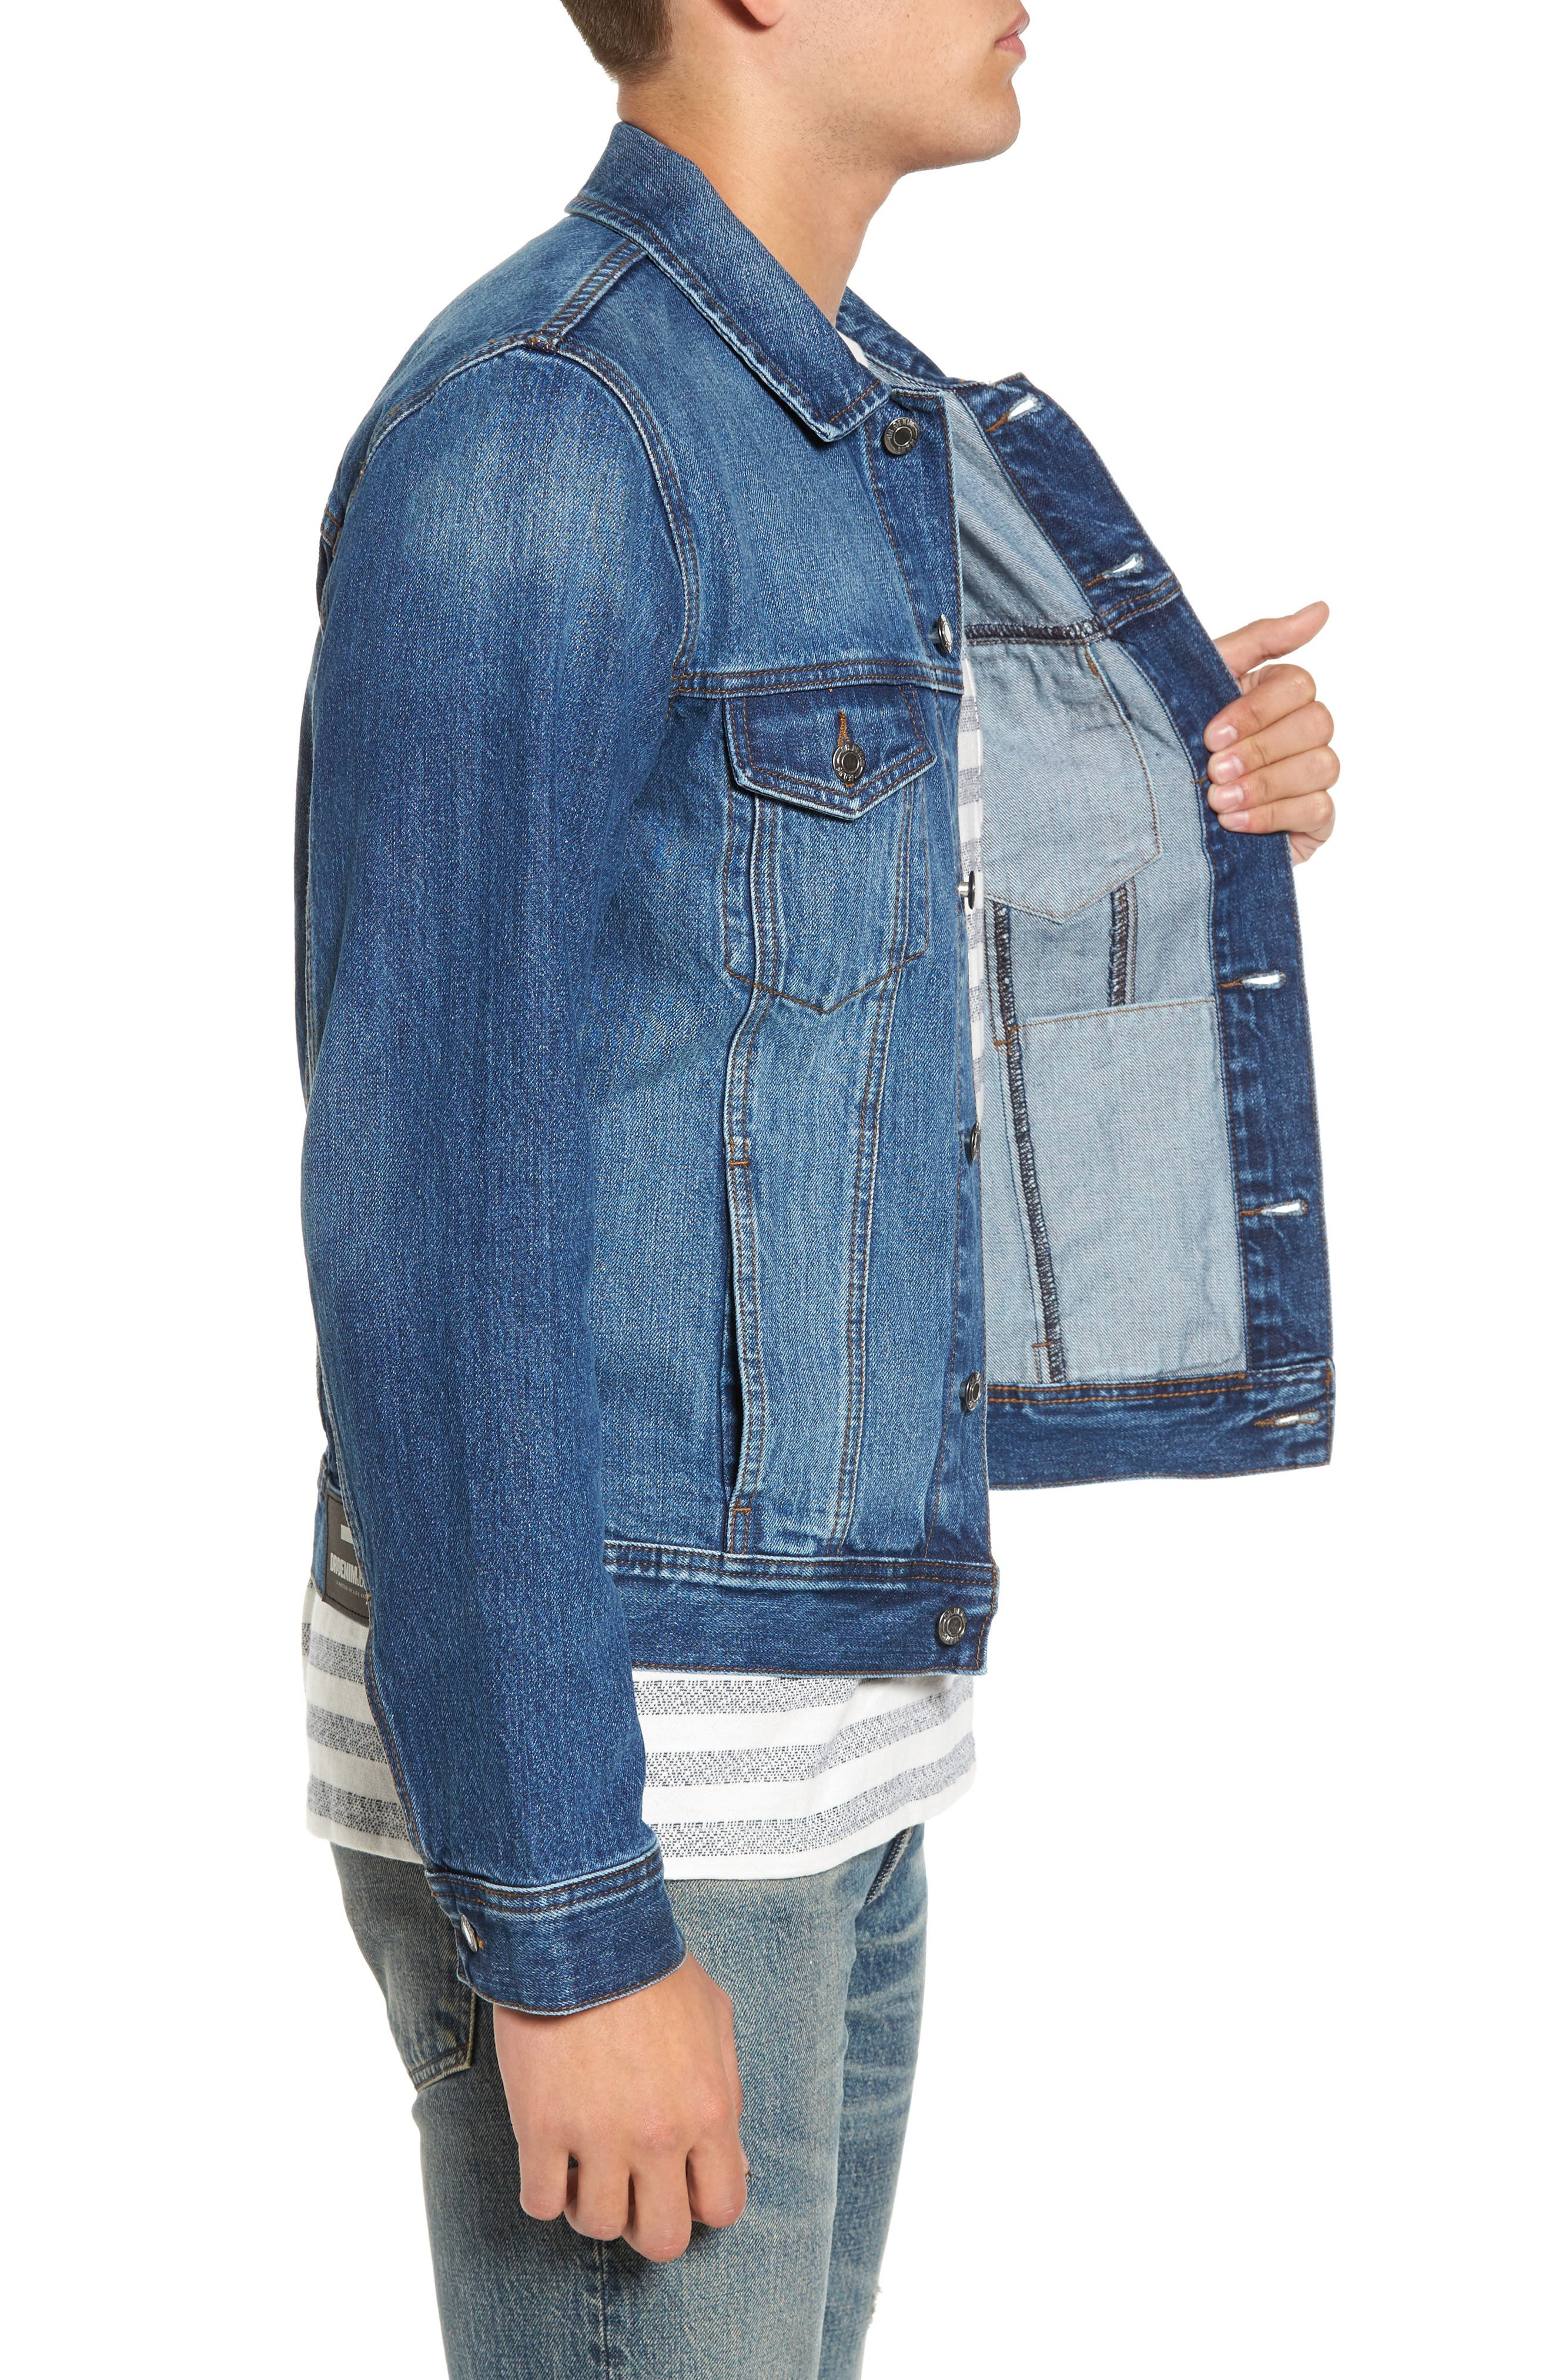 Dwight Denim Jacket,                             Alternate thumbnail 3, color,                             Worn Mid Blue